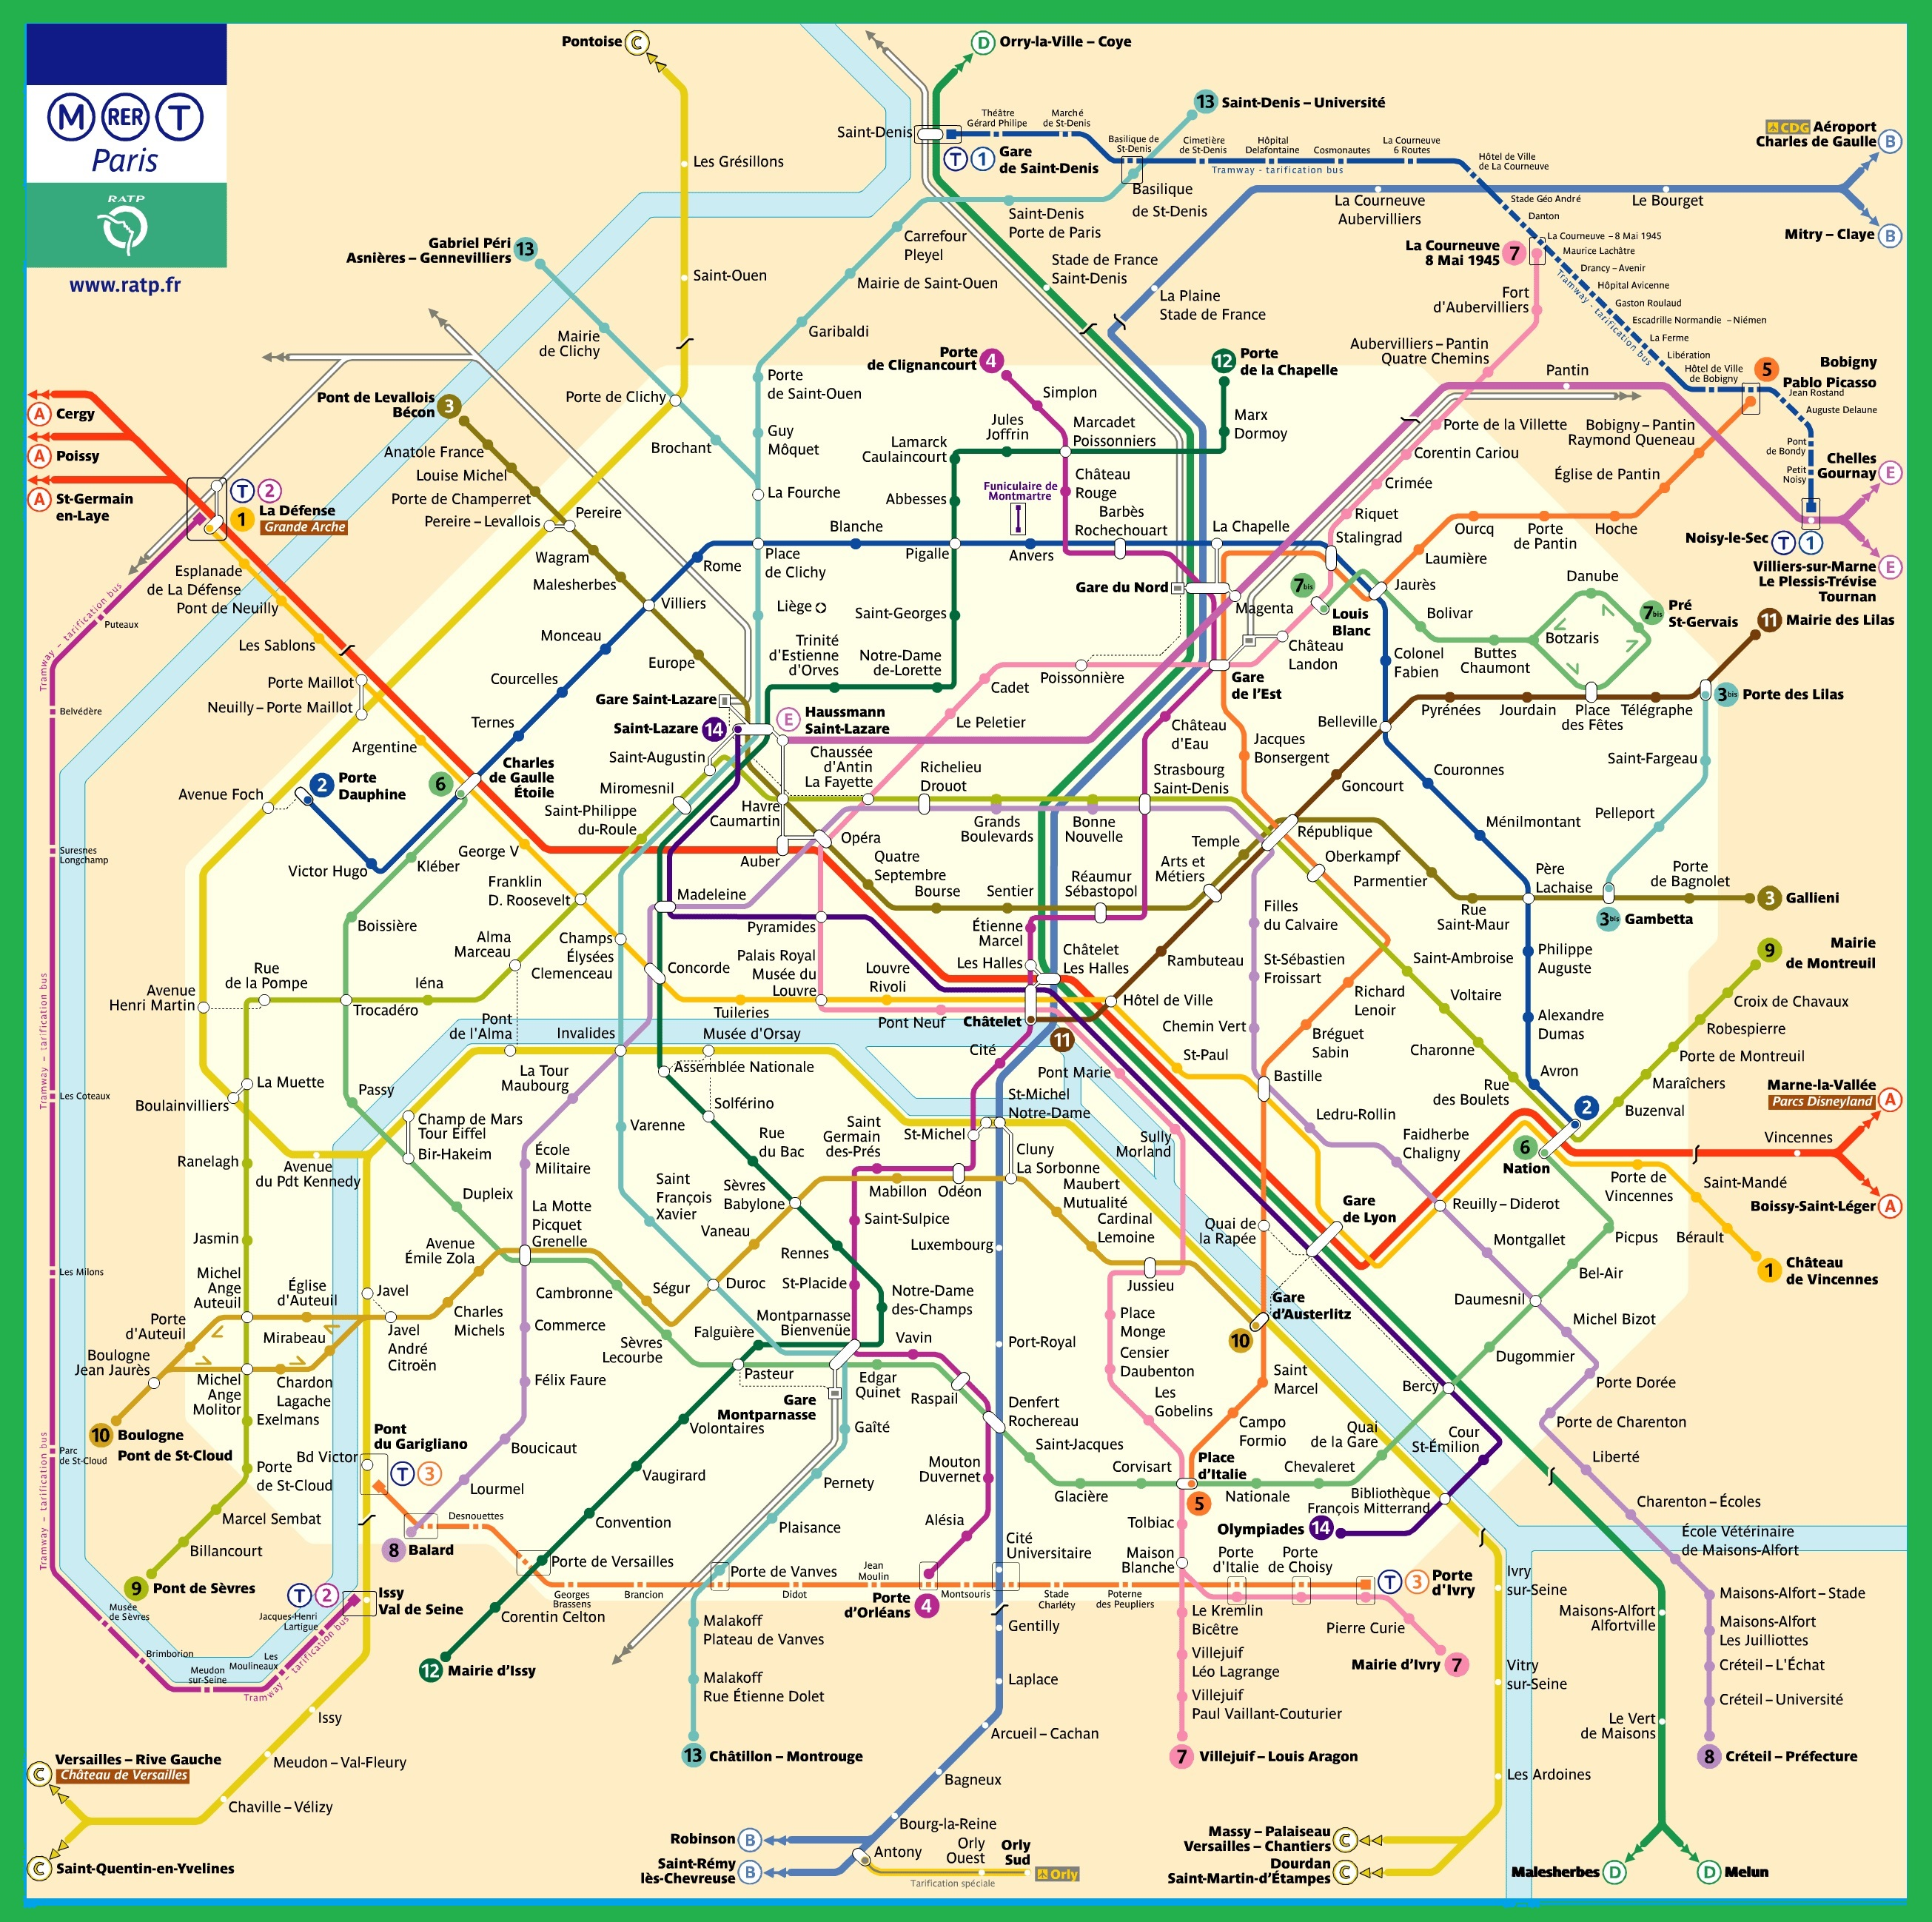 plan-du-metro-paris - Photos